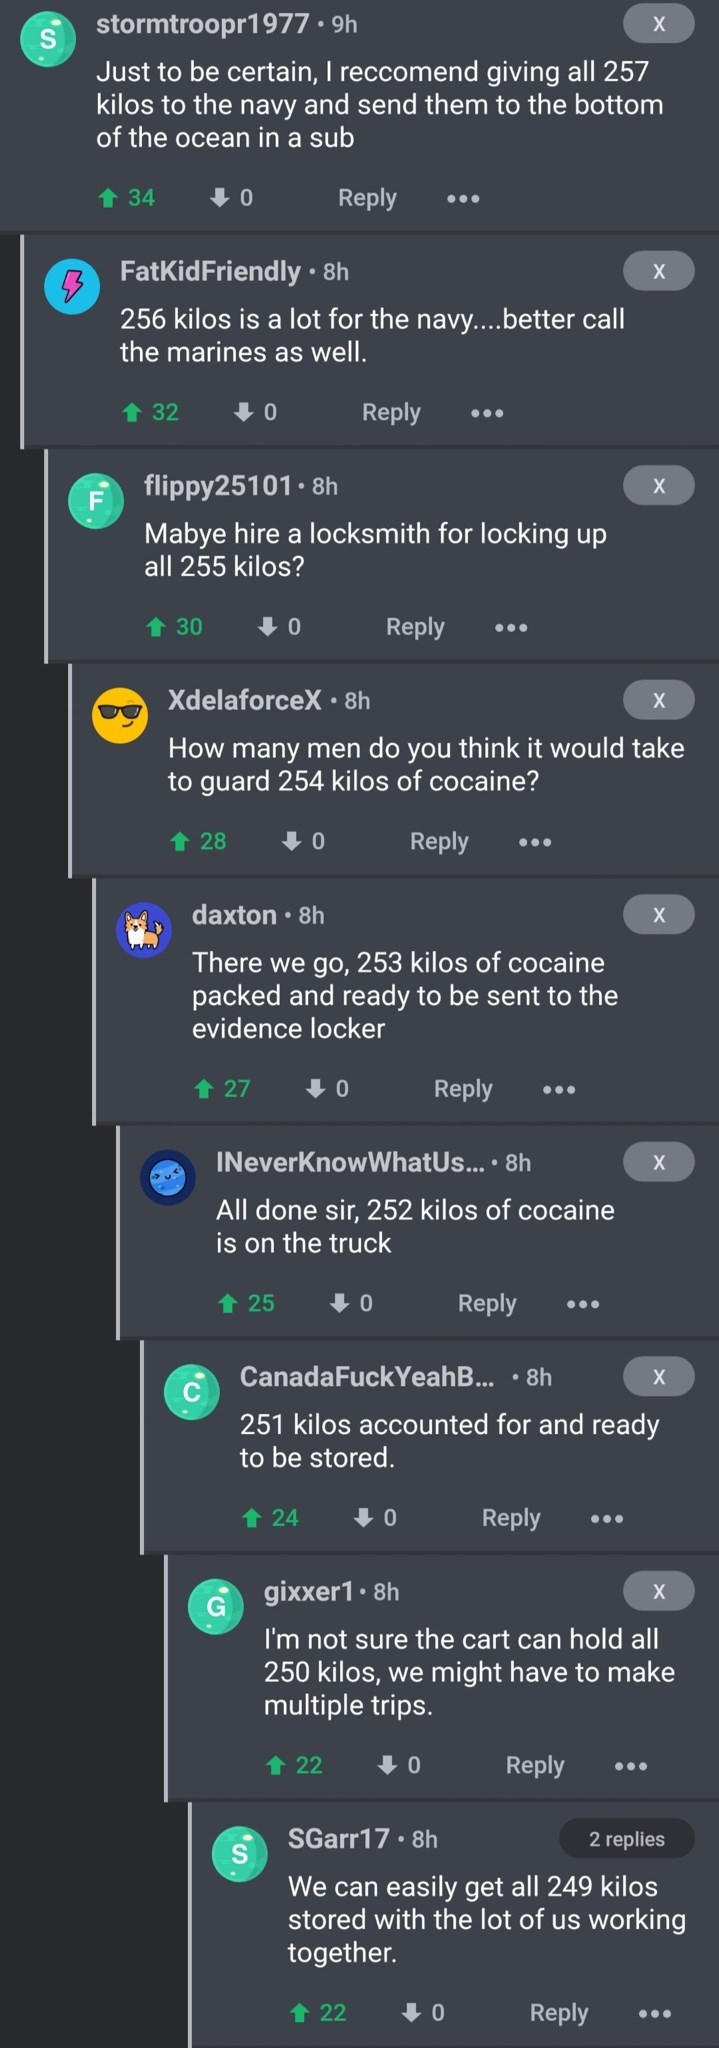 drug bust - Text - stormtroopr1977.9h X Just to be certain, I reccomend giving all 257 kilos to the navy and send them to the bottom of the ocean in a sub t 34 Reply FatKidFriendly 8h 256 kilos is a lot for the navy....better call the marines as well. Reply t 32 01 flippy25101 8h X Mabye hire a locksmith for locking up all 255 kilos? t 30 Reply 0 1 XdelaforceX 8h How many men do you think it would take to guard 254 kilos of cocaine? t 28 Reply 0 1 daxton 8h X There we go, 253 kilos of cocaine pa